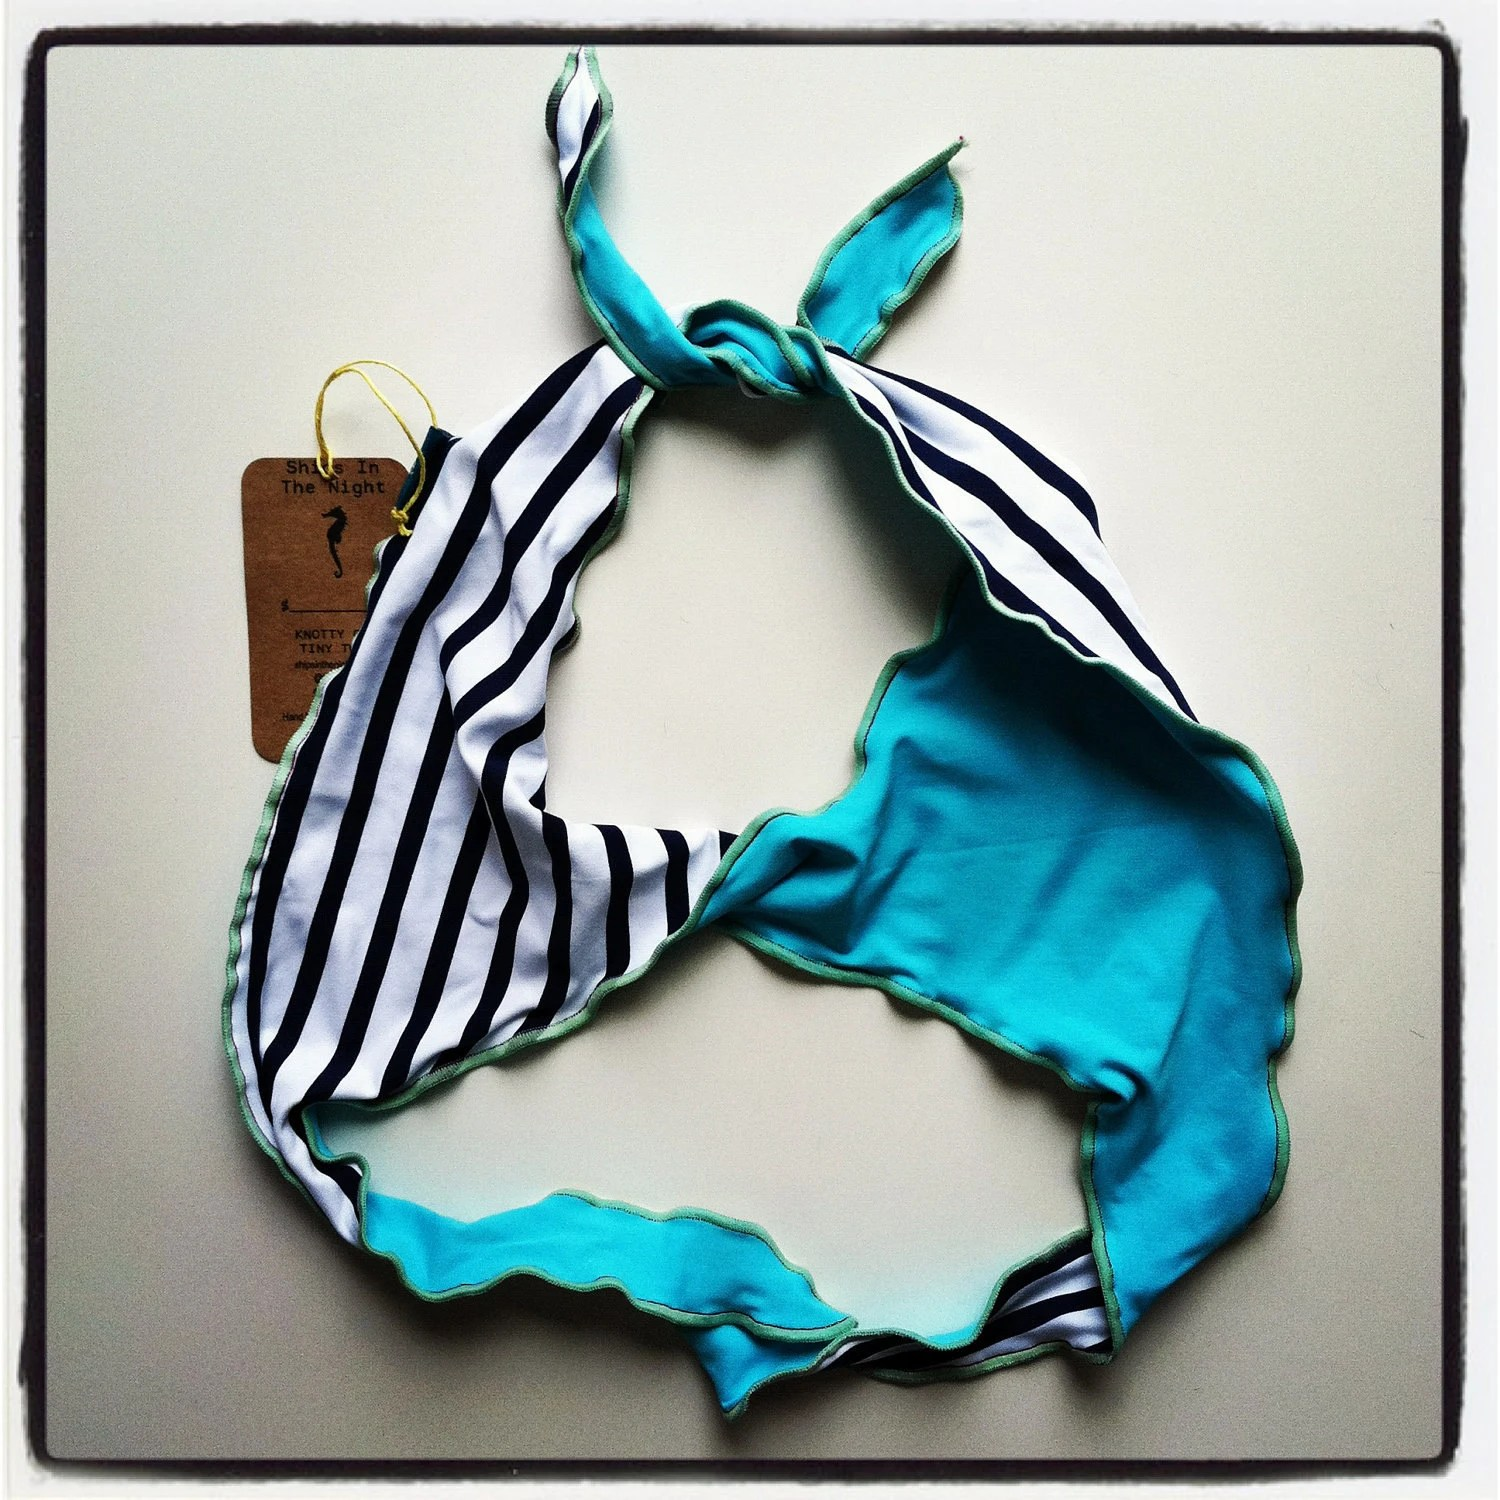 Teal & Nautical Stripes Tiny Twist Multi-FUN-ctional Brazilian Bikini